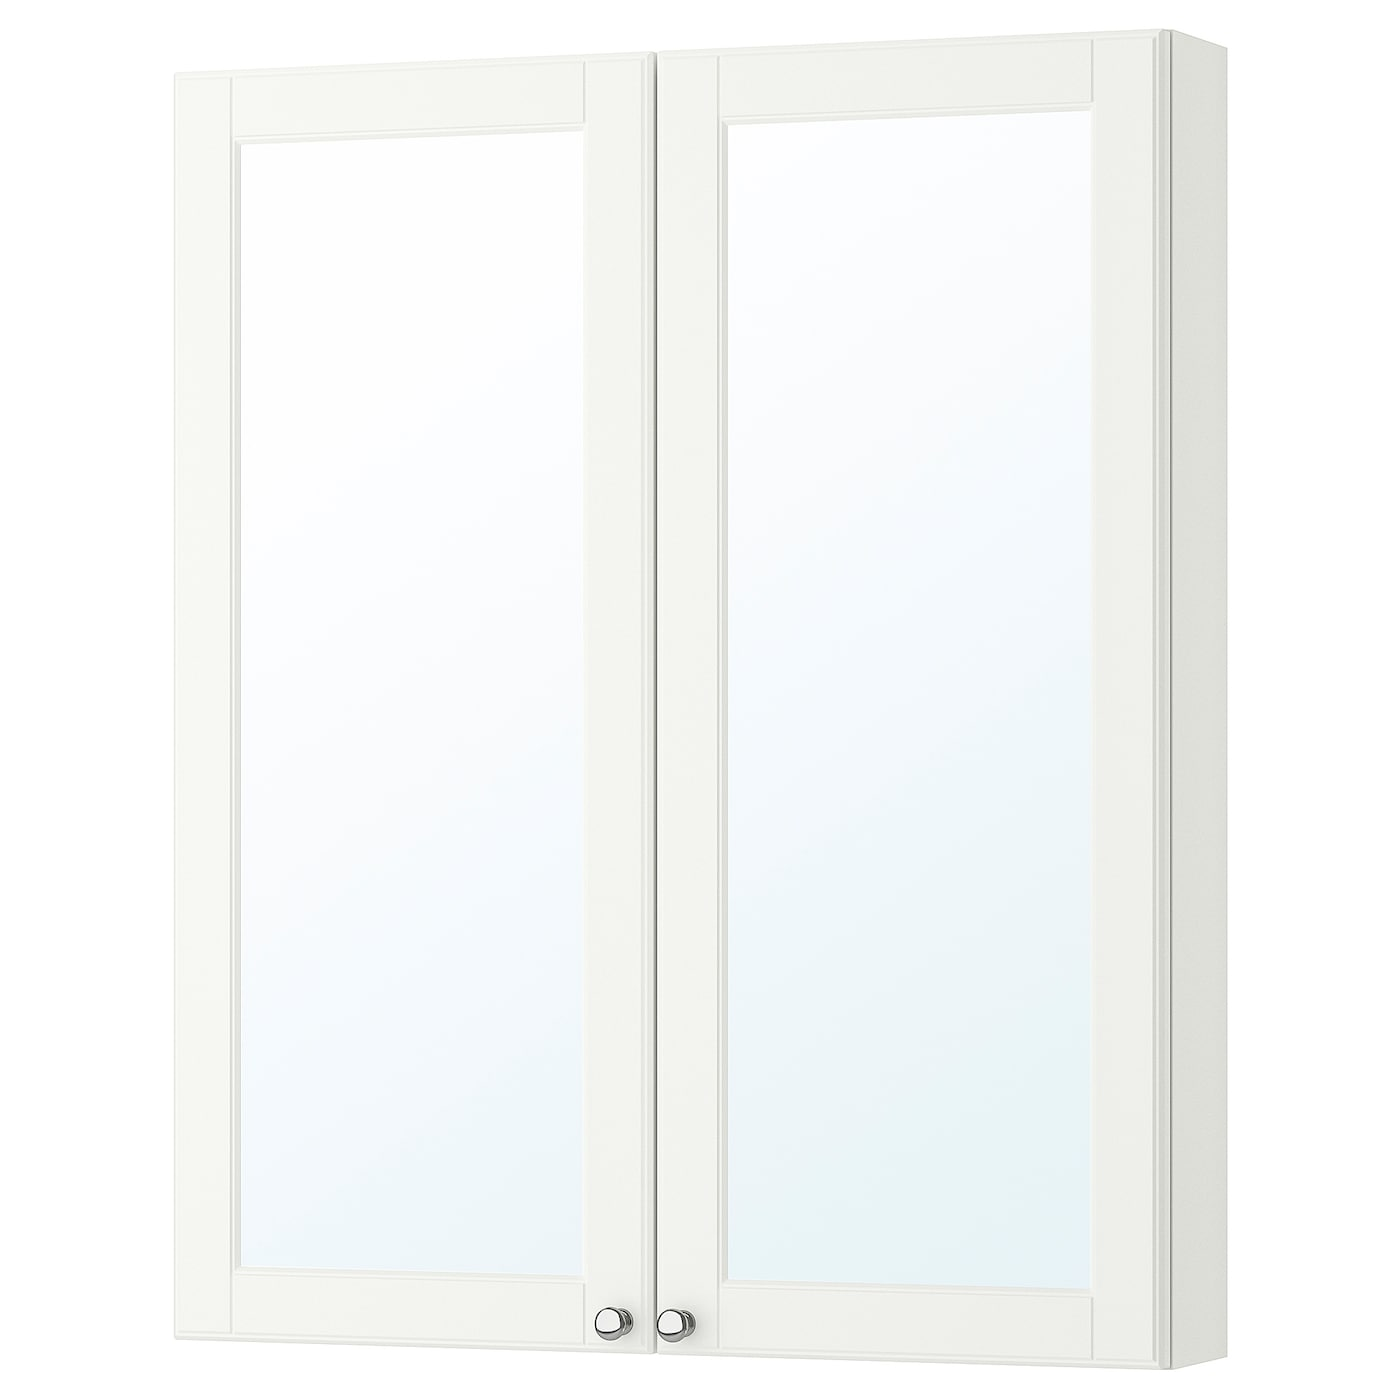 IKEA GODMORGON mirror cabinet with 2 doors Mirror door is self-closing the last few centimetres.